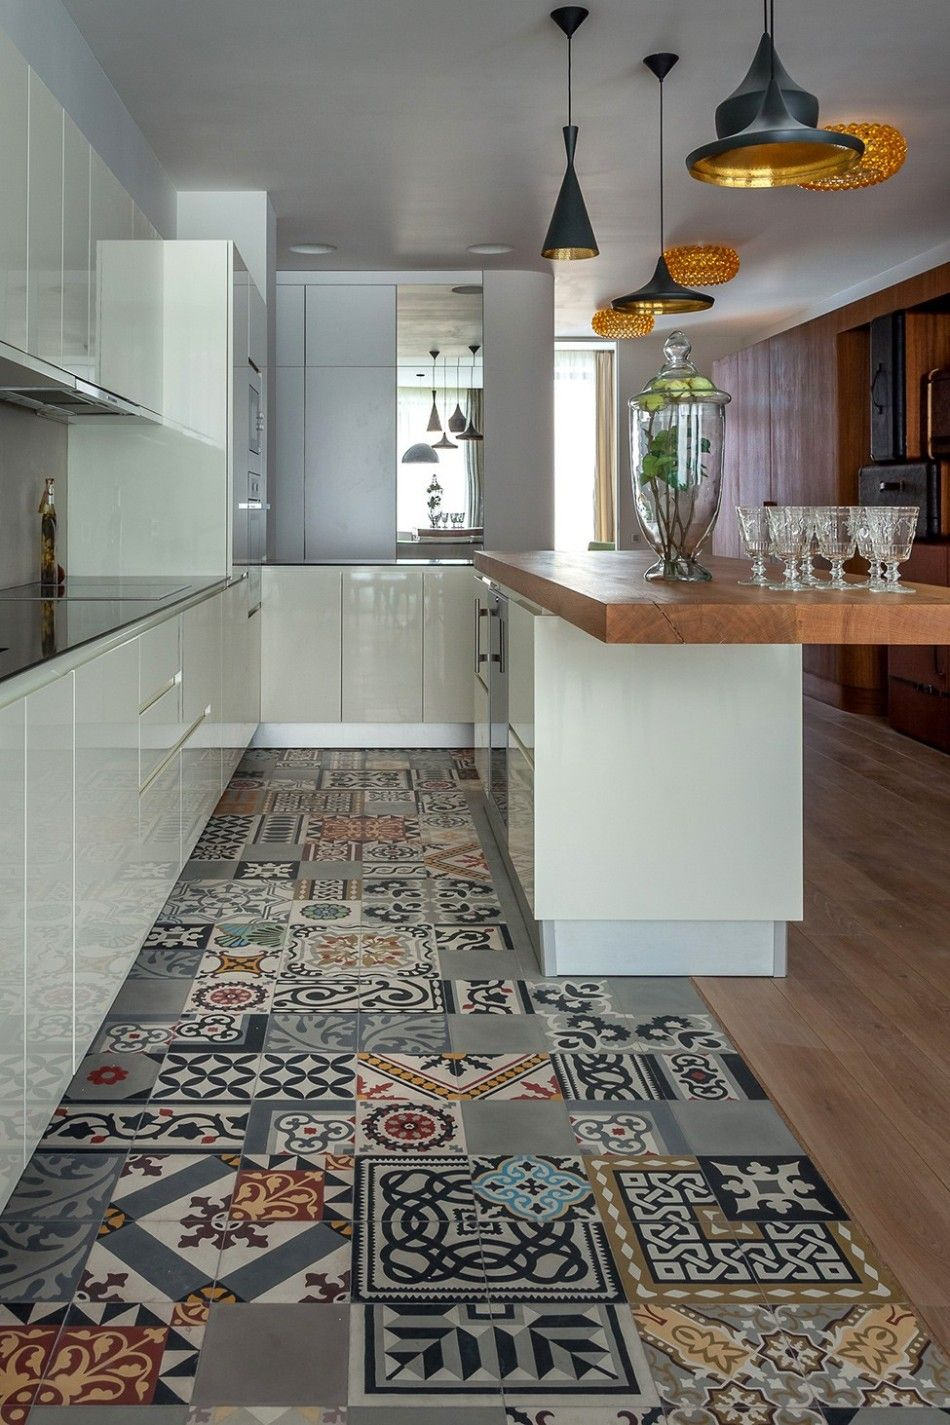 Funky Kitchen Funky Kitchen Floor Tile Design Decor Interior Home